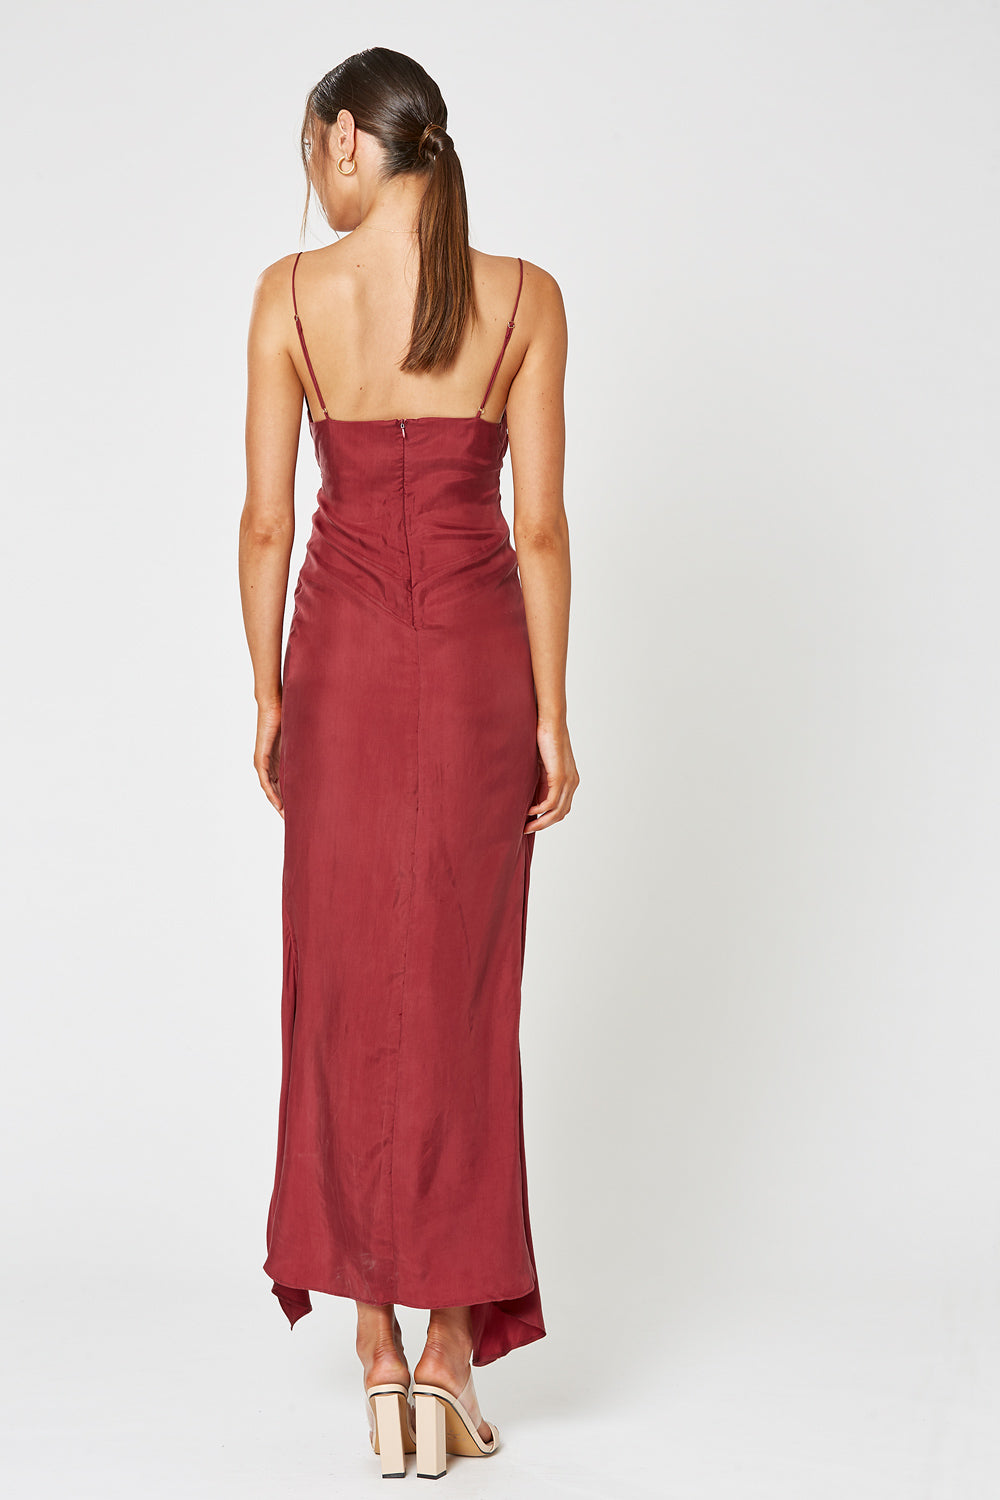 MEZZO MAXI DRESS WINE